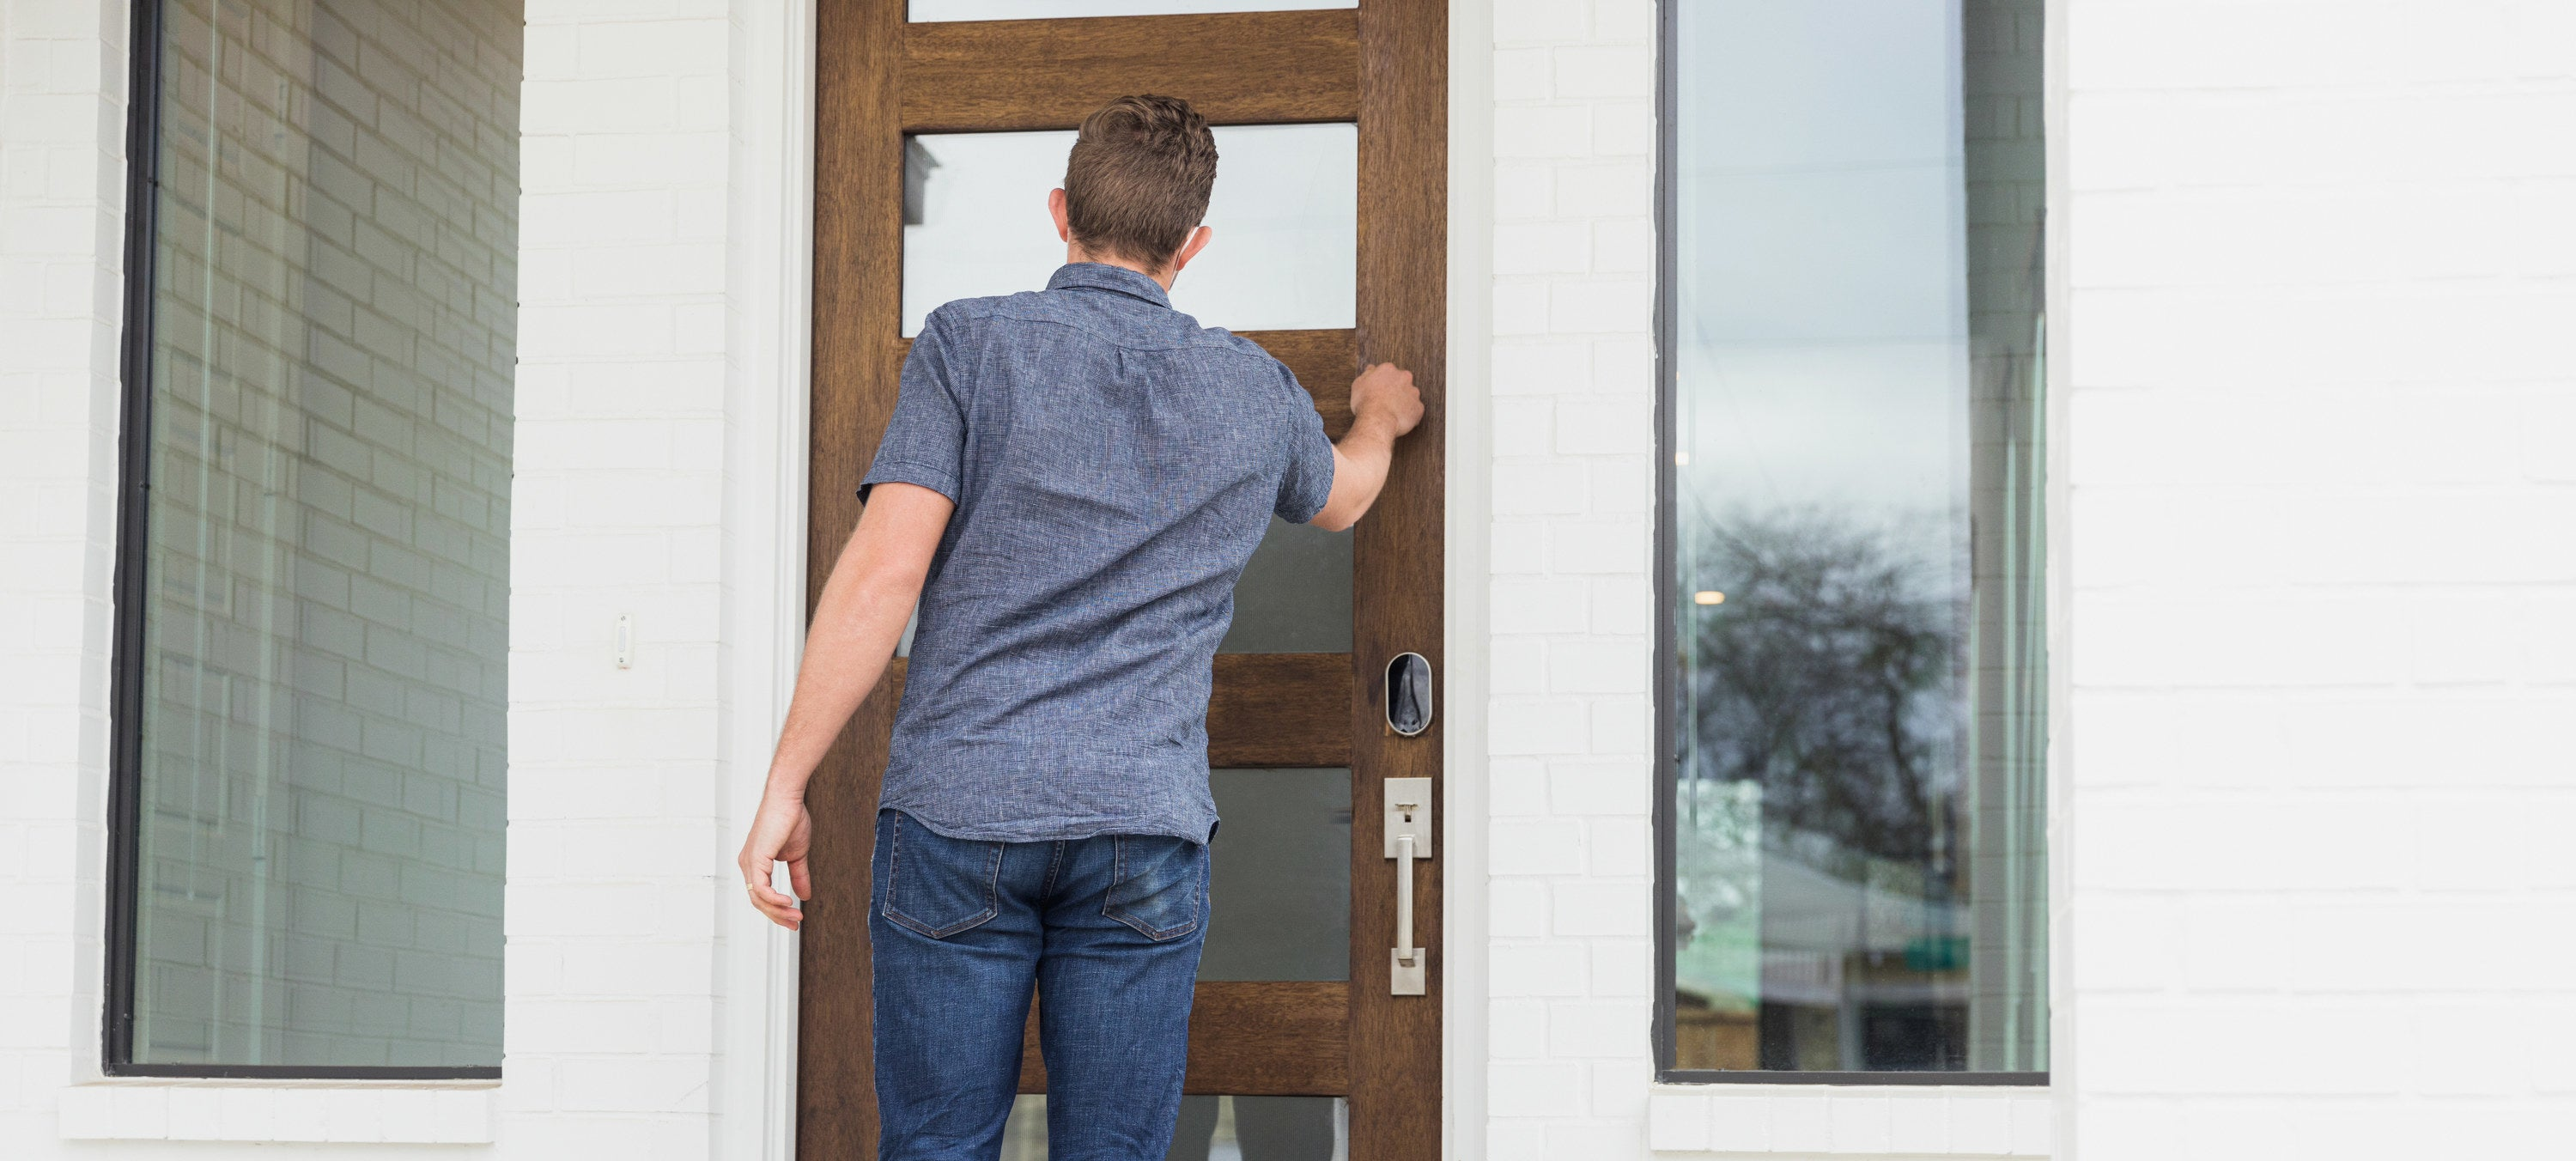 A man knocking on the door